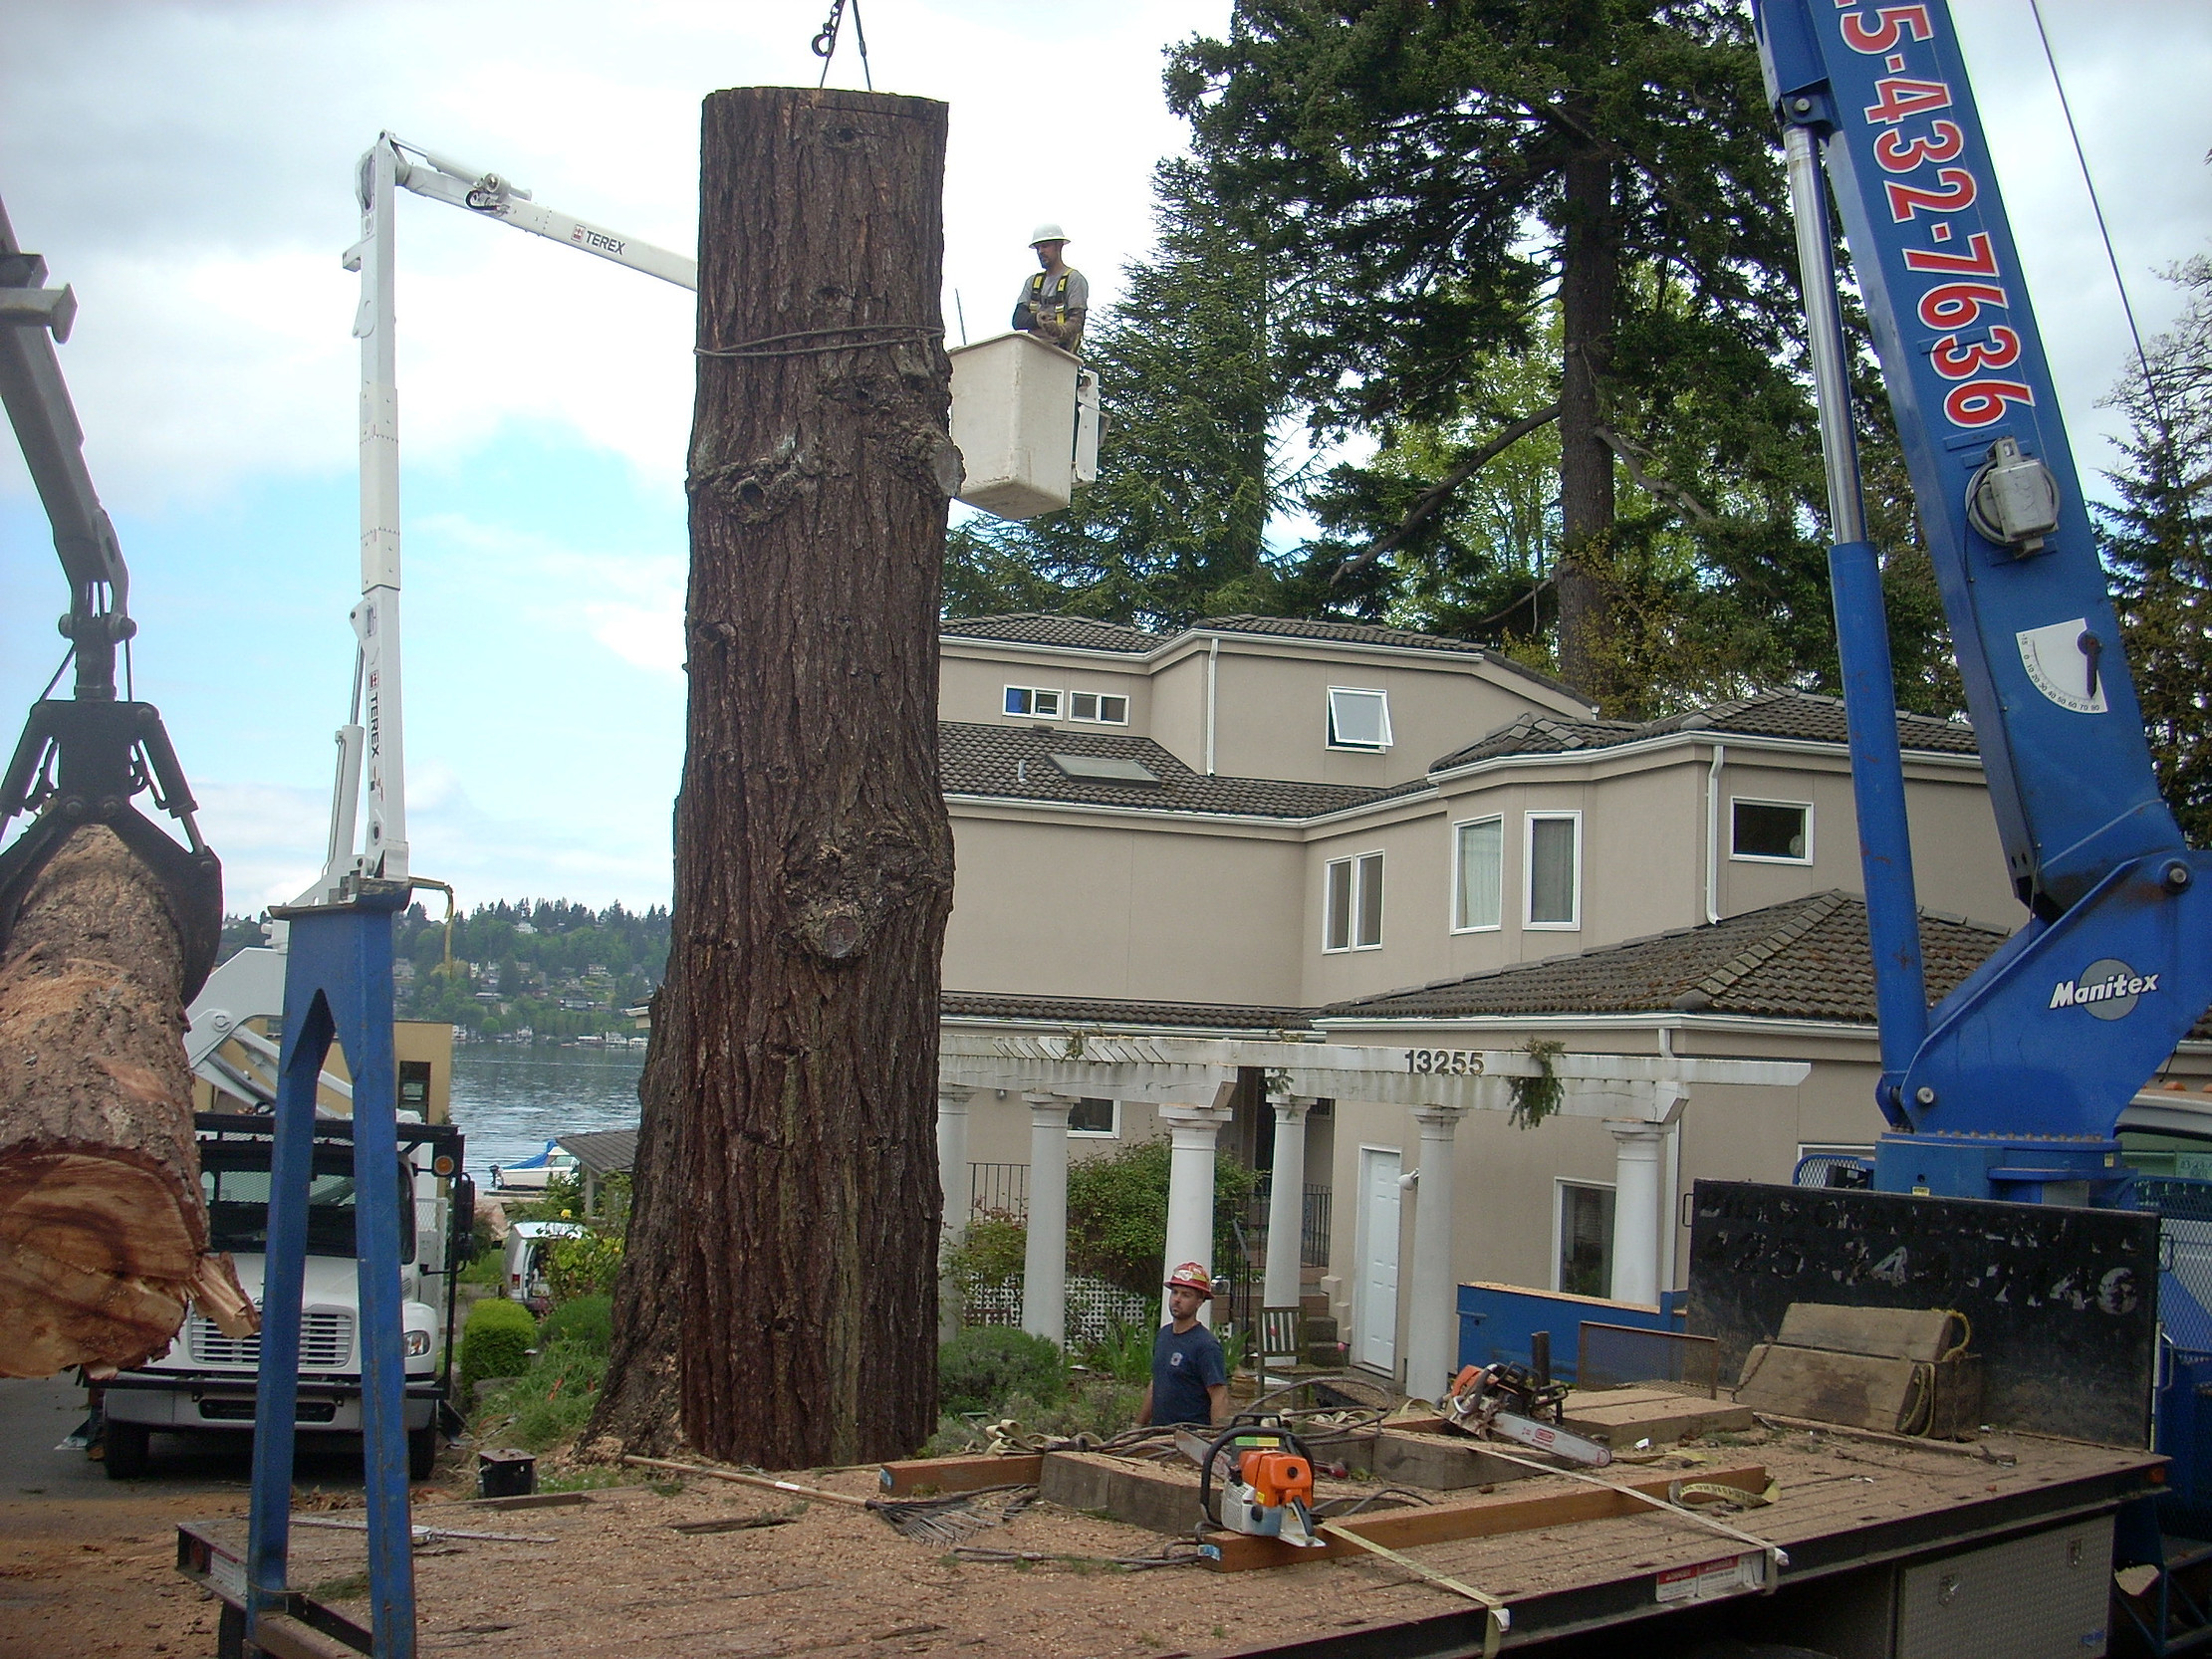 P'n'D Logging and Tree Service